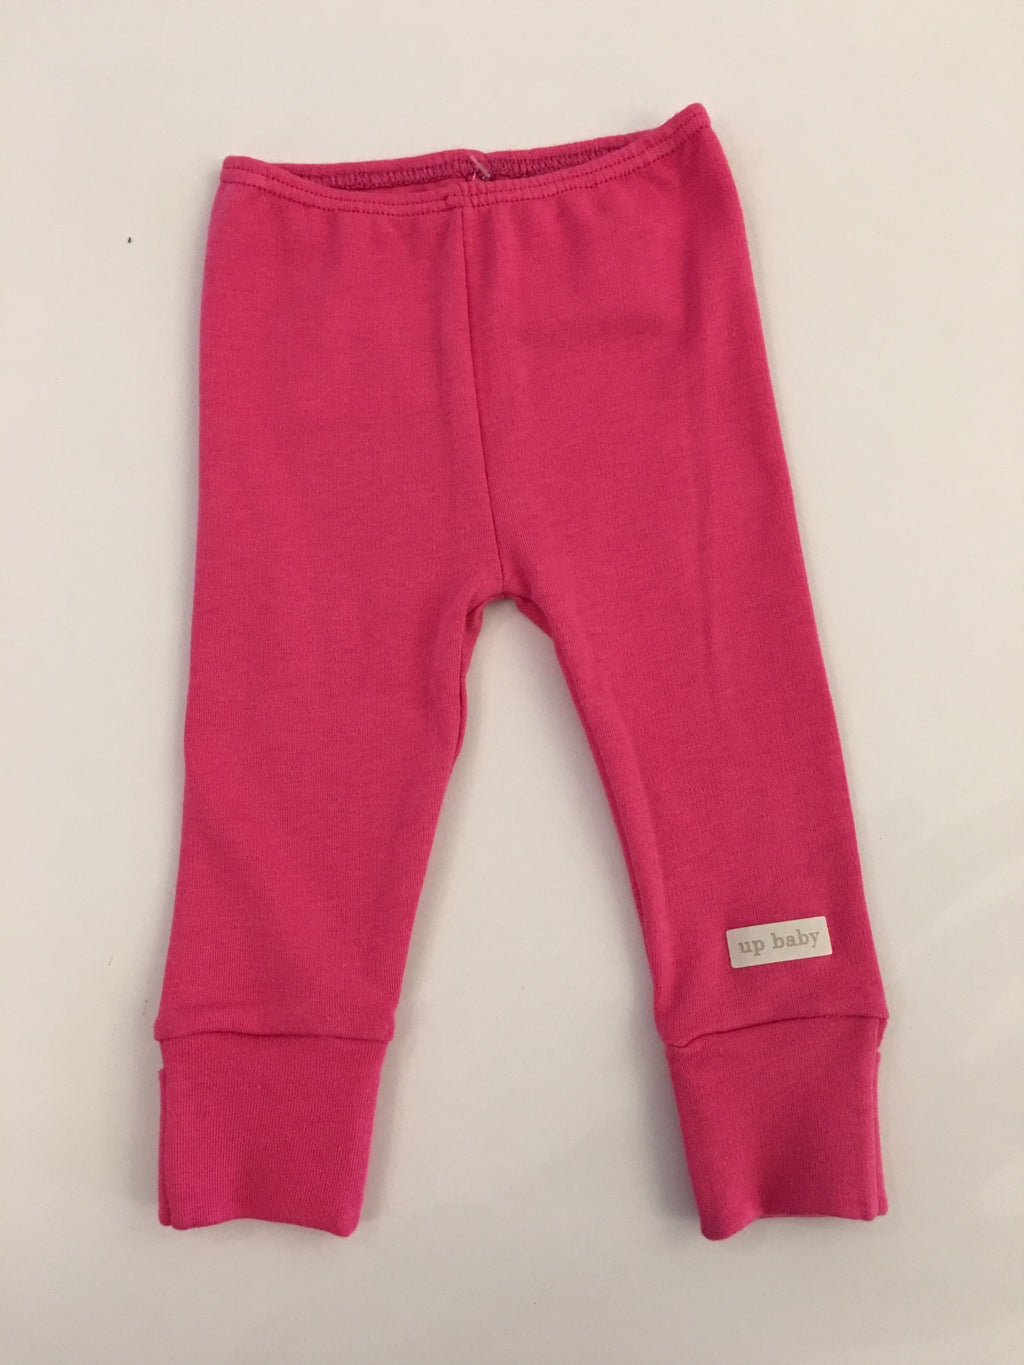 UP Baby Solid Pink Pant SALE